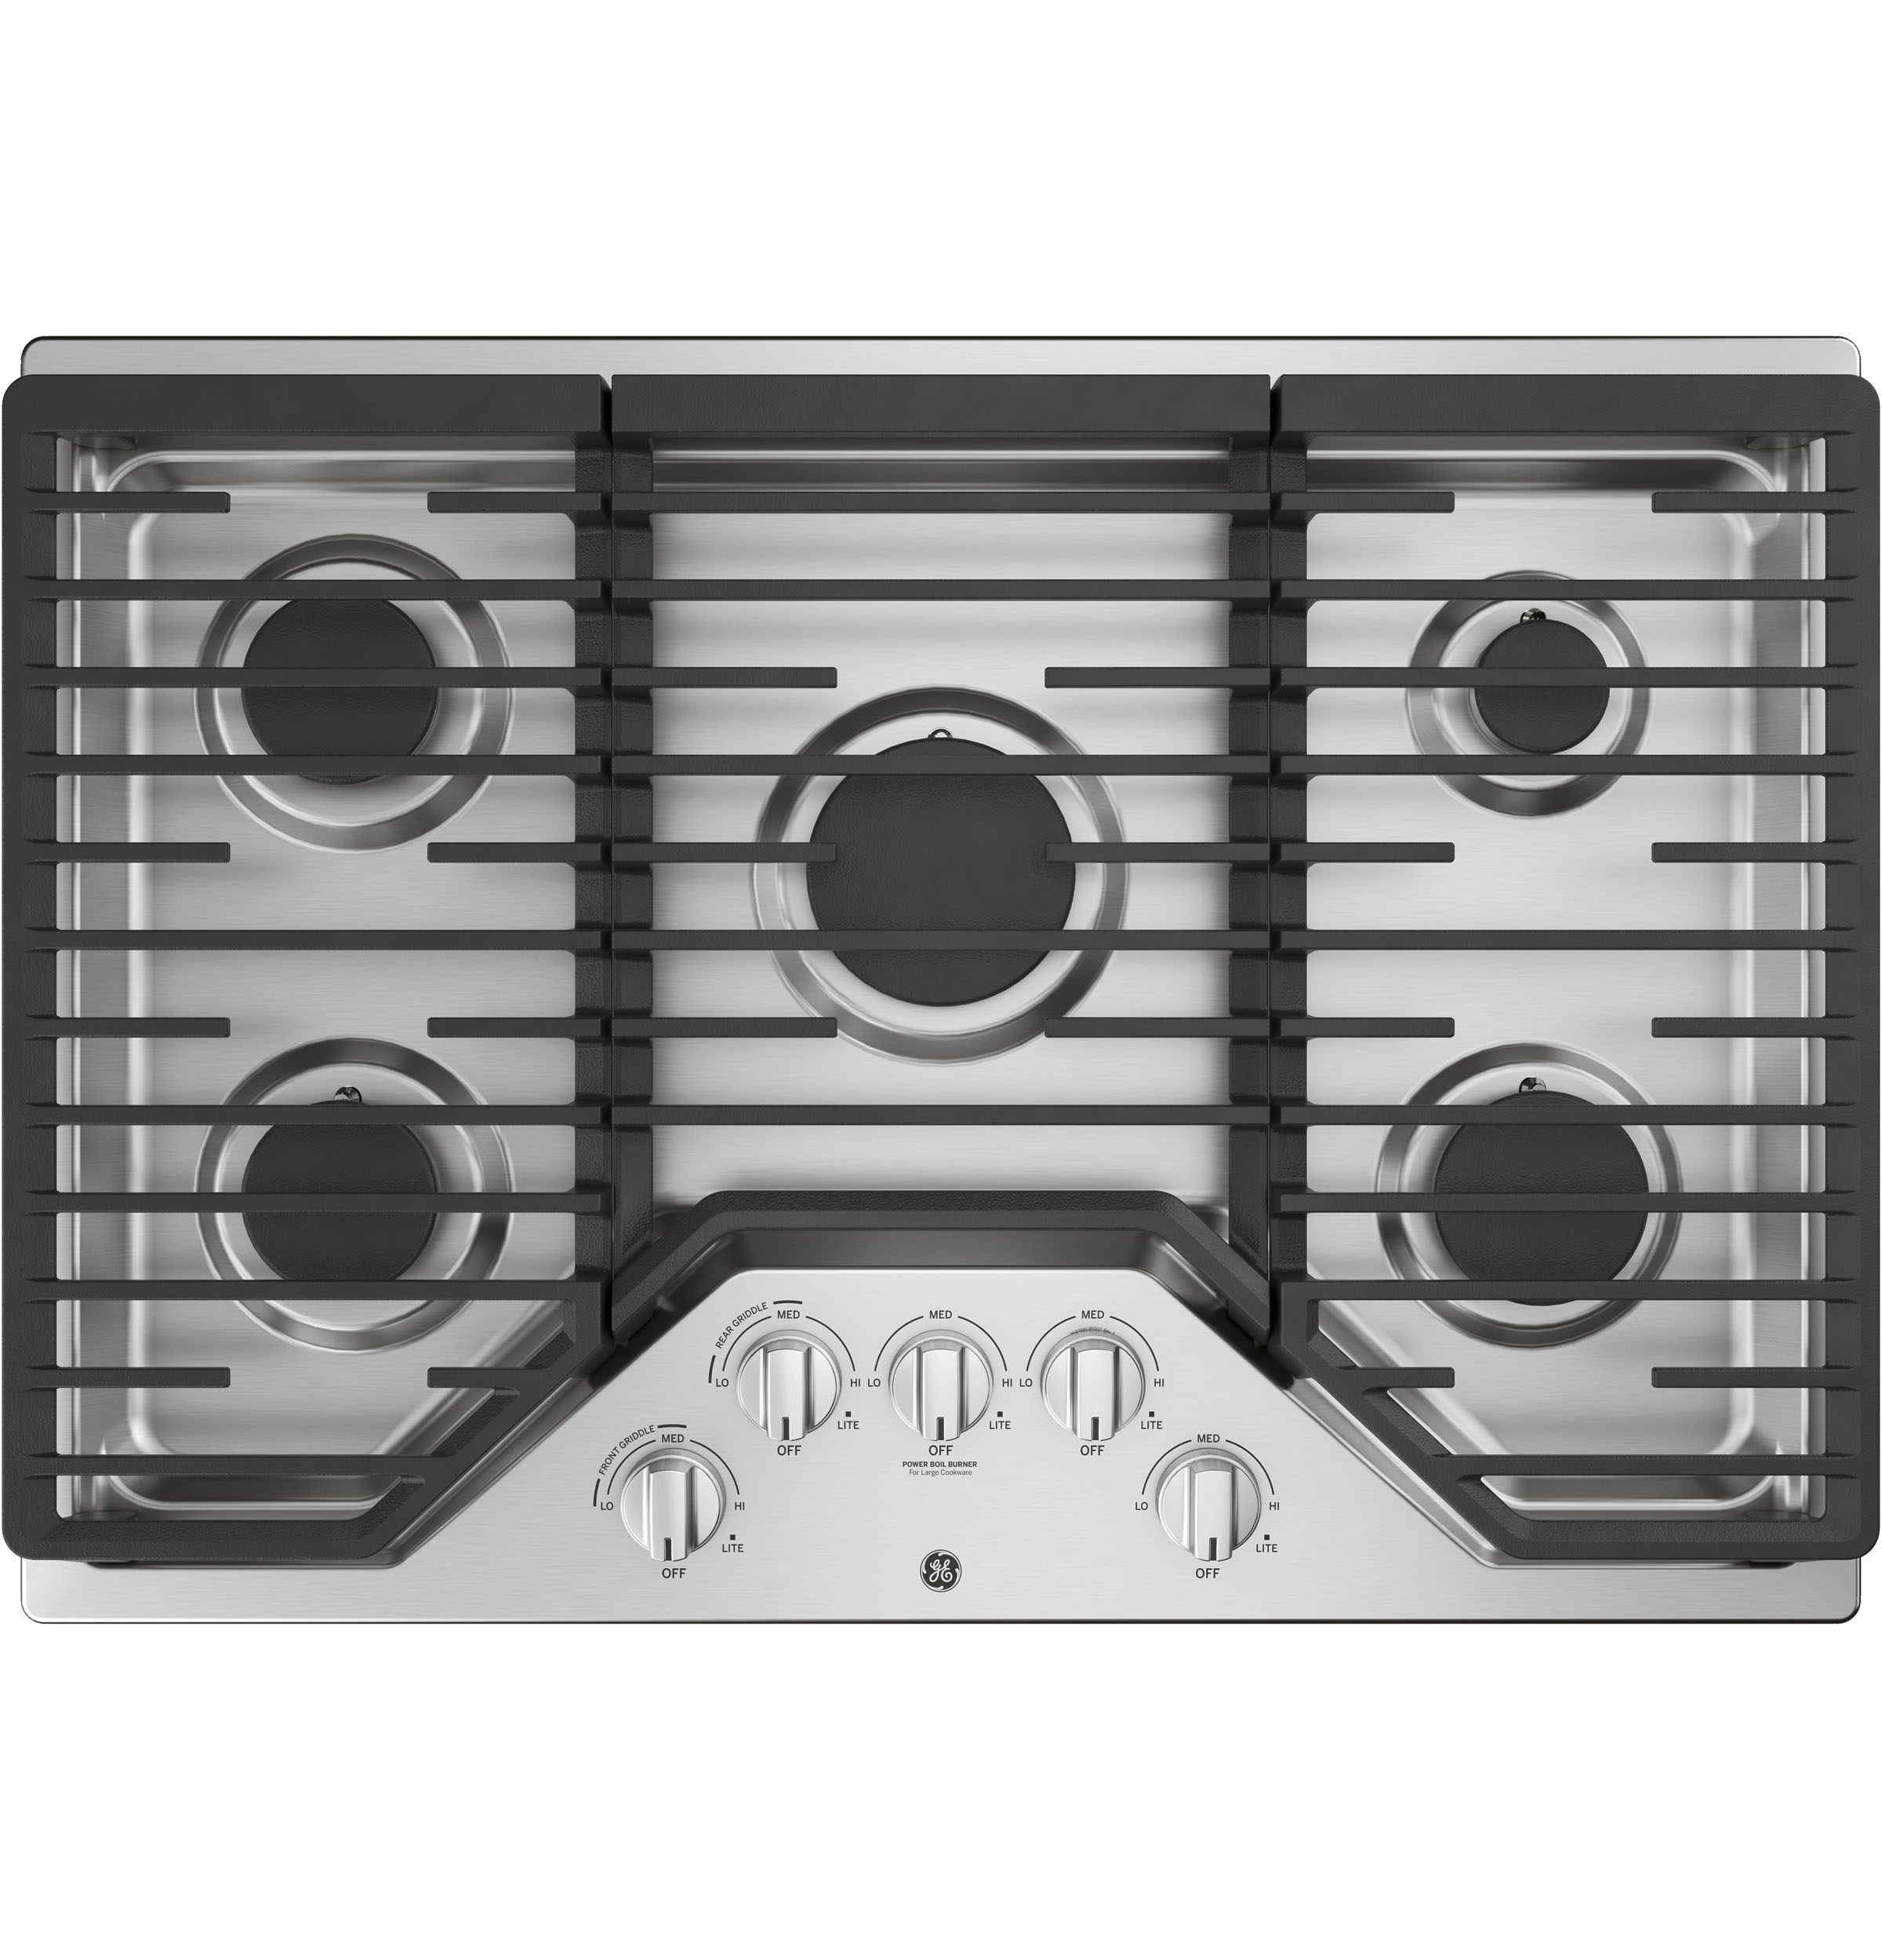 "GE GE® 30"" Built-In Gas Cooktop with 5 Burners and Dishwasher Safe Grates"